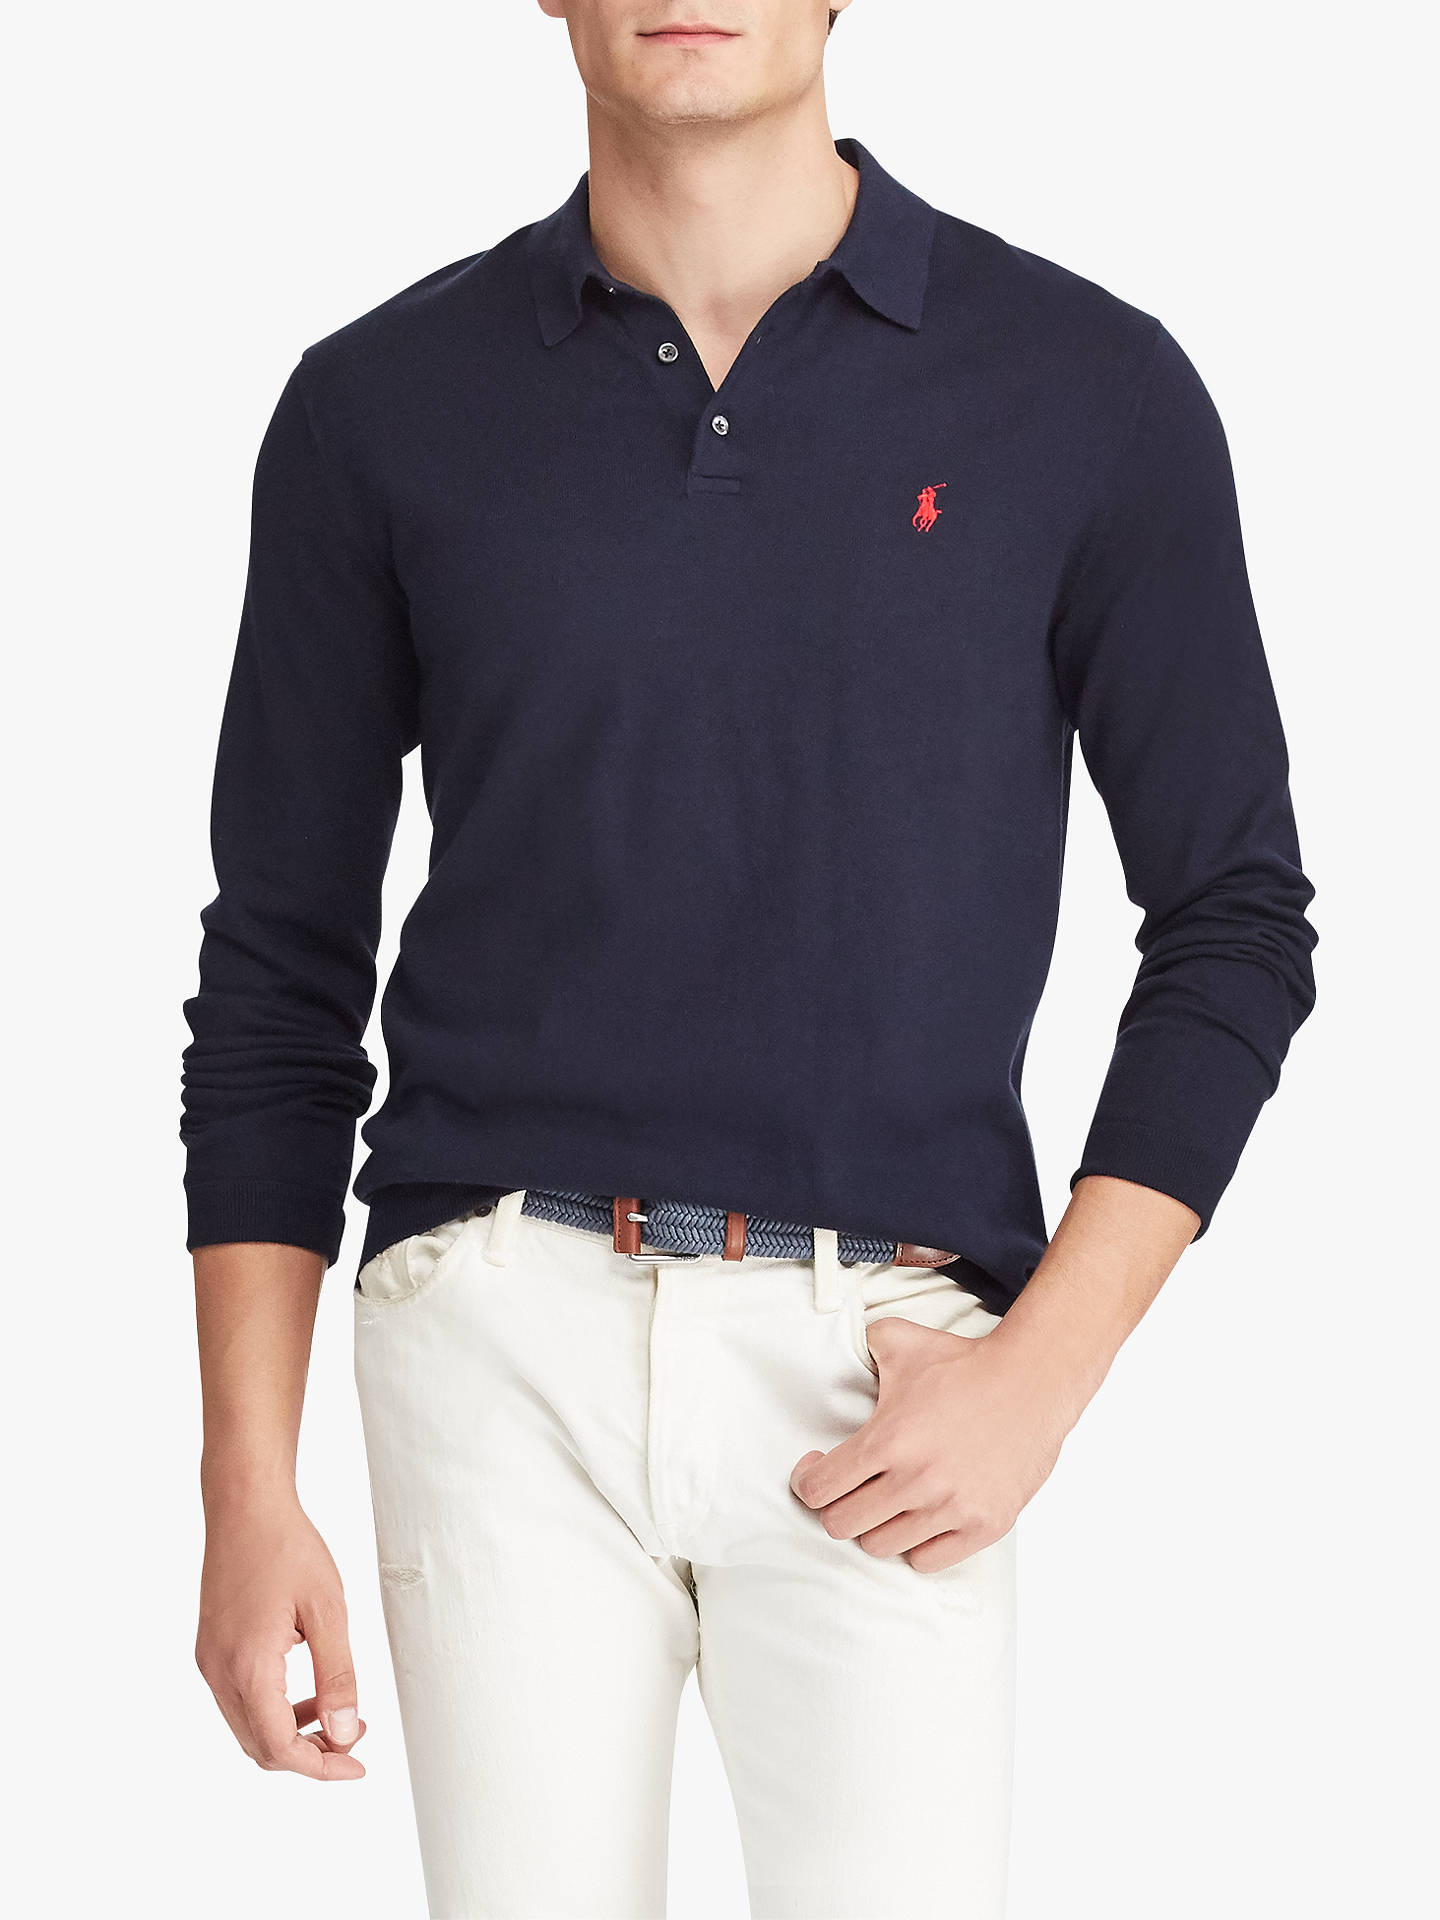 5eafb0269 Polo Ralph Lauren Long Sleeve Knitted Polo Shirt at John Lewis ...